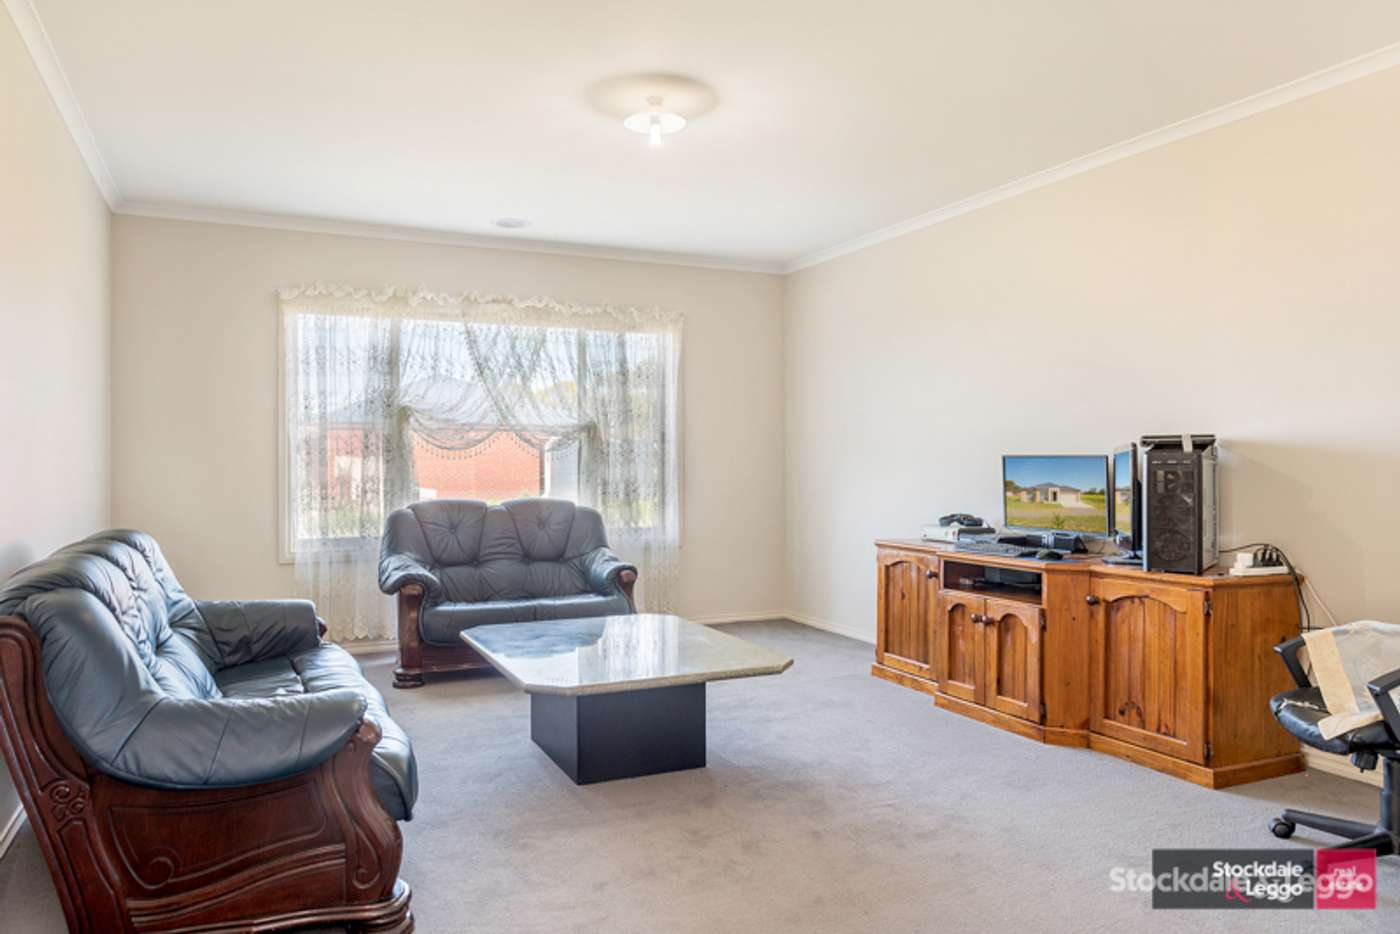 Sixth view of Homely house listing, 28 Lomandra Drive, Teesdale VIC 3328